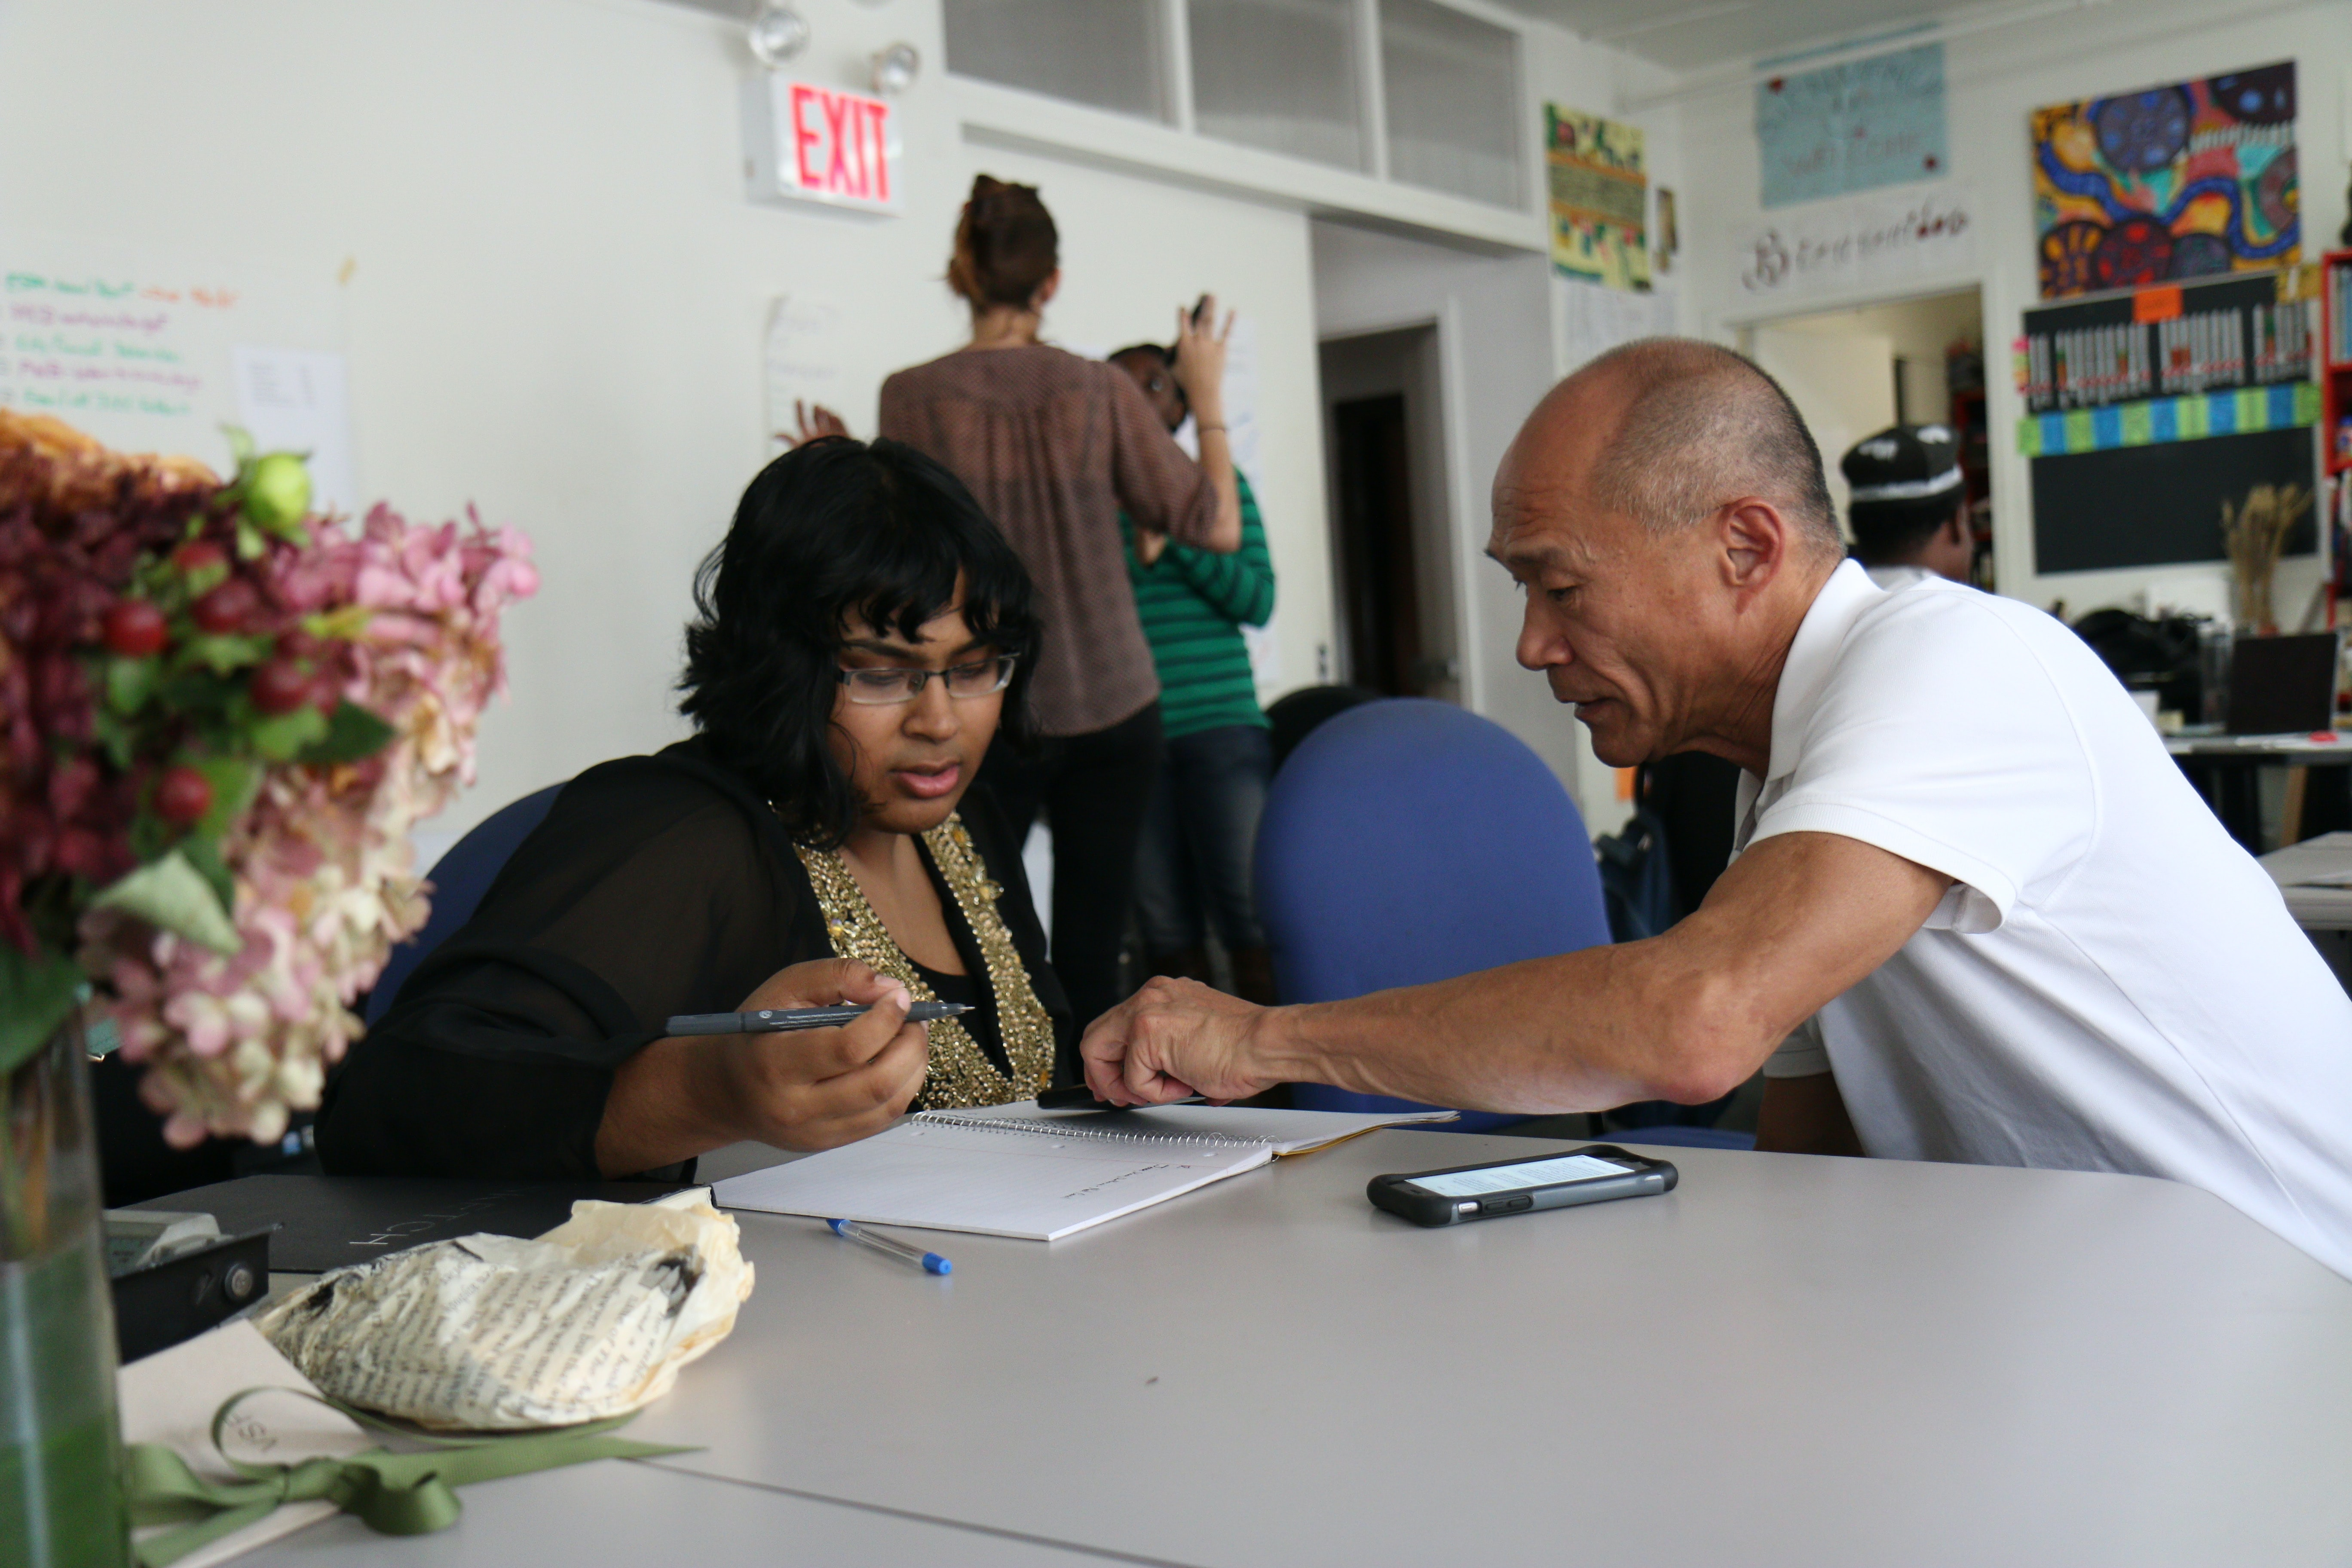 a man teaching a woman sitting at a table